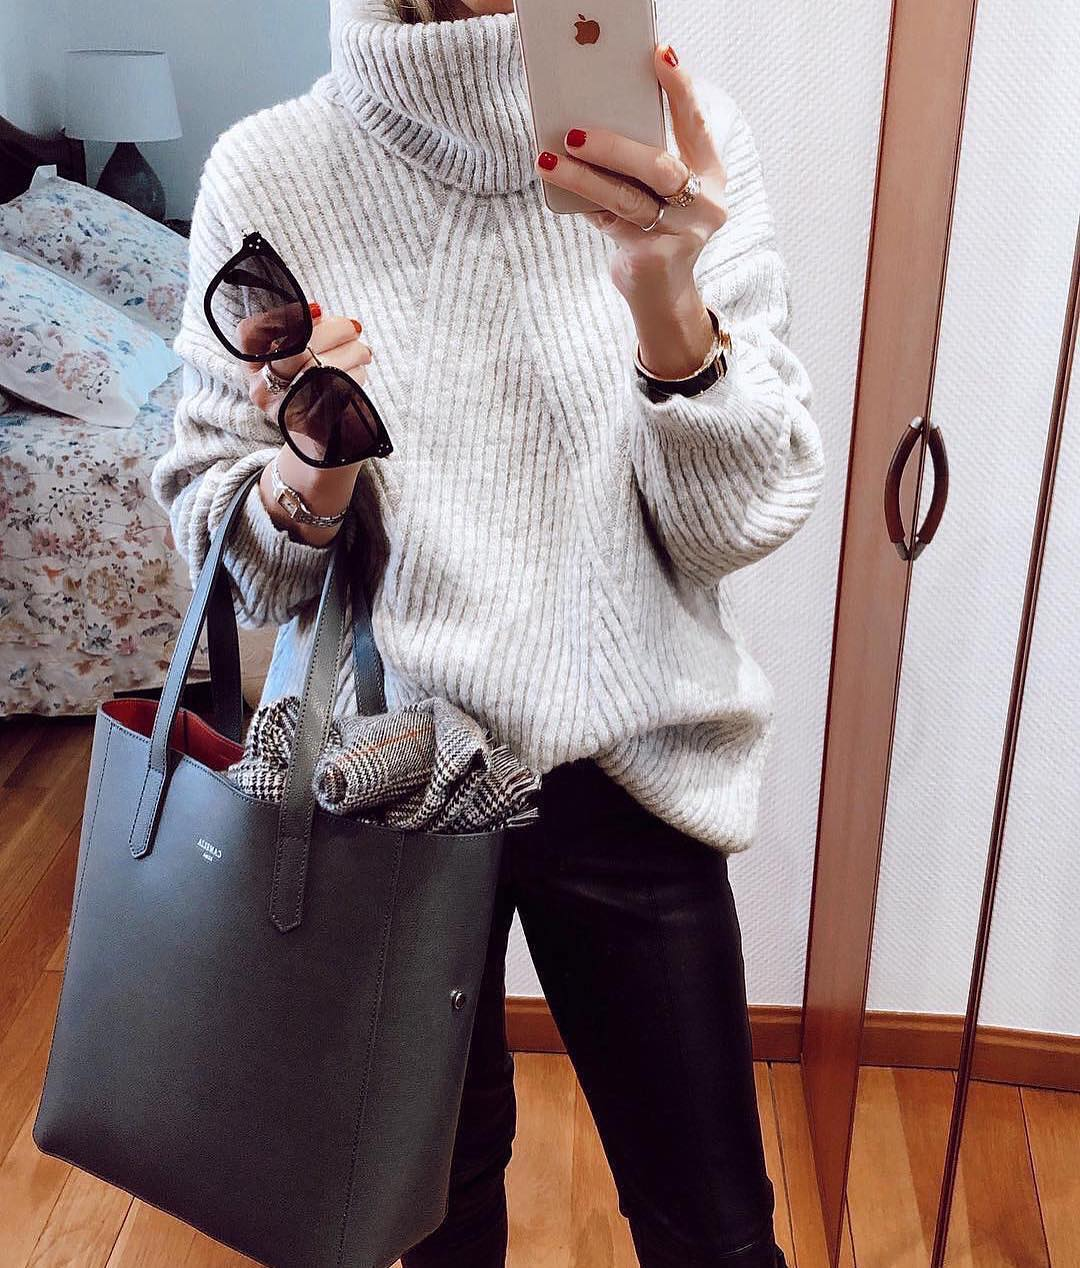 Ribbed Knit Sweater In White And Black Leather Pants For Fall 2019